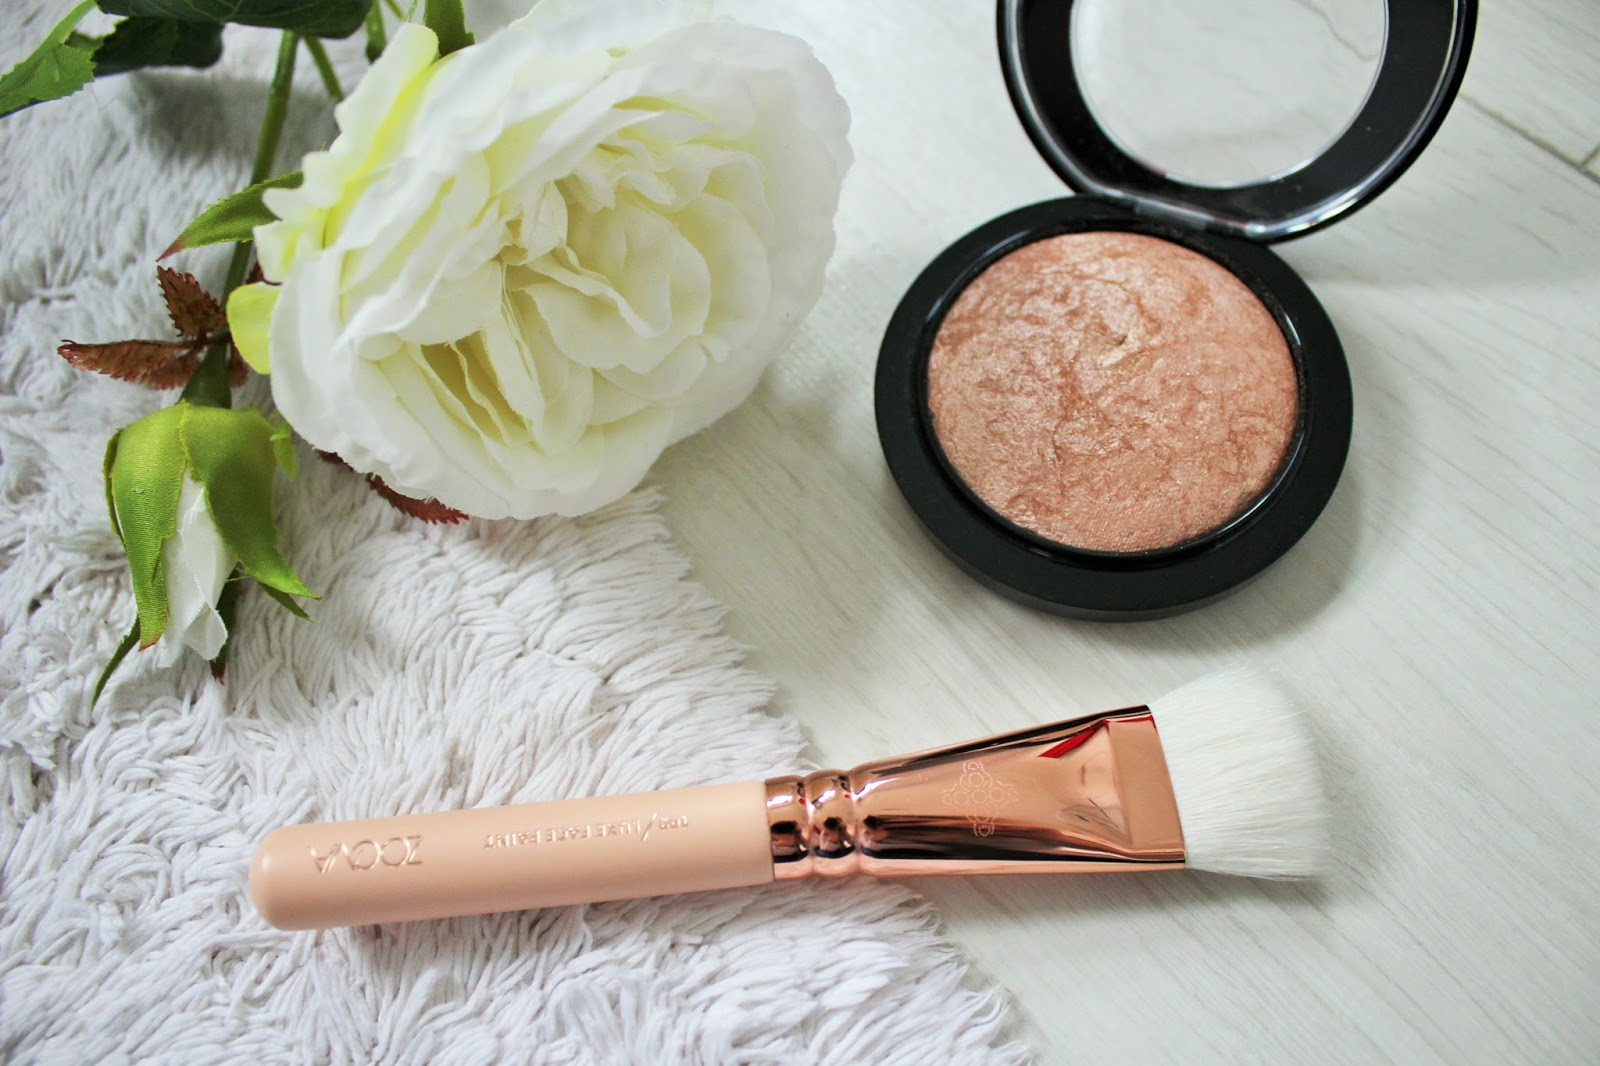 Zoeva Rose Golden Luxury Set Vol. 2 Review - 4